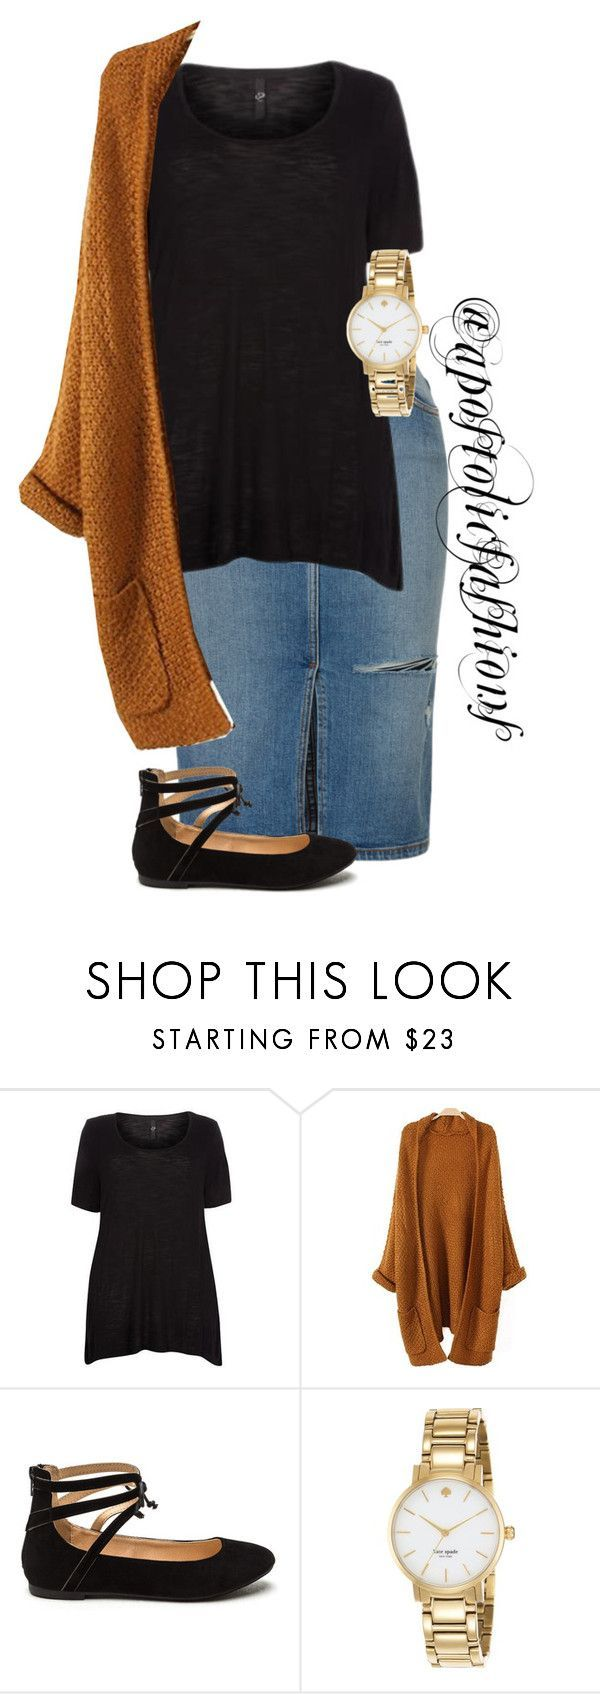 """""""Apostolic Fashions #1817"""" by apostolicfashions ❤ liked on Polyvore featuring Kate Spade"""